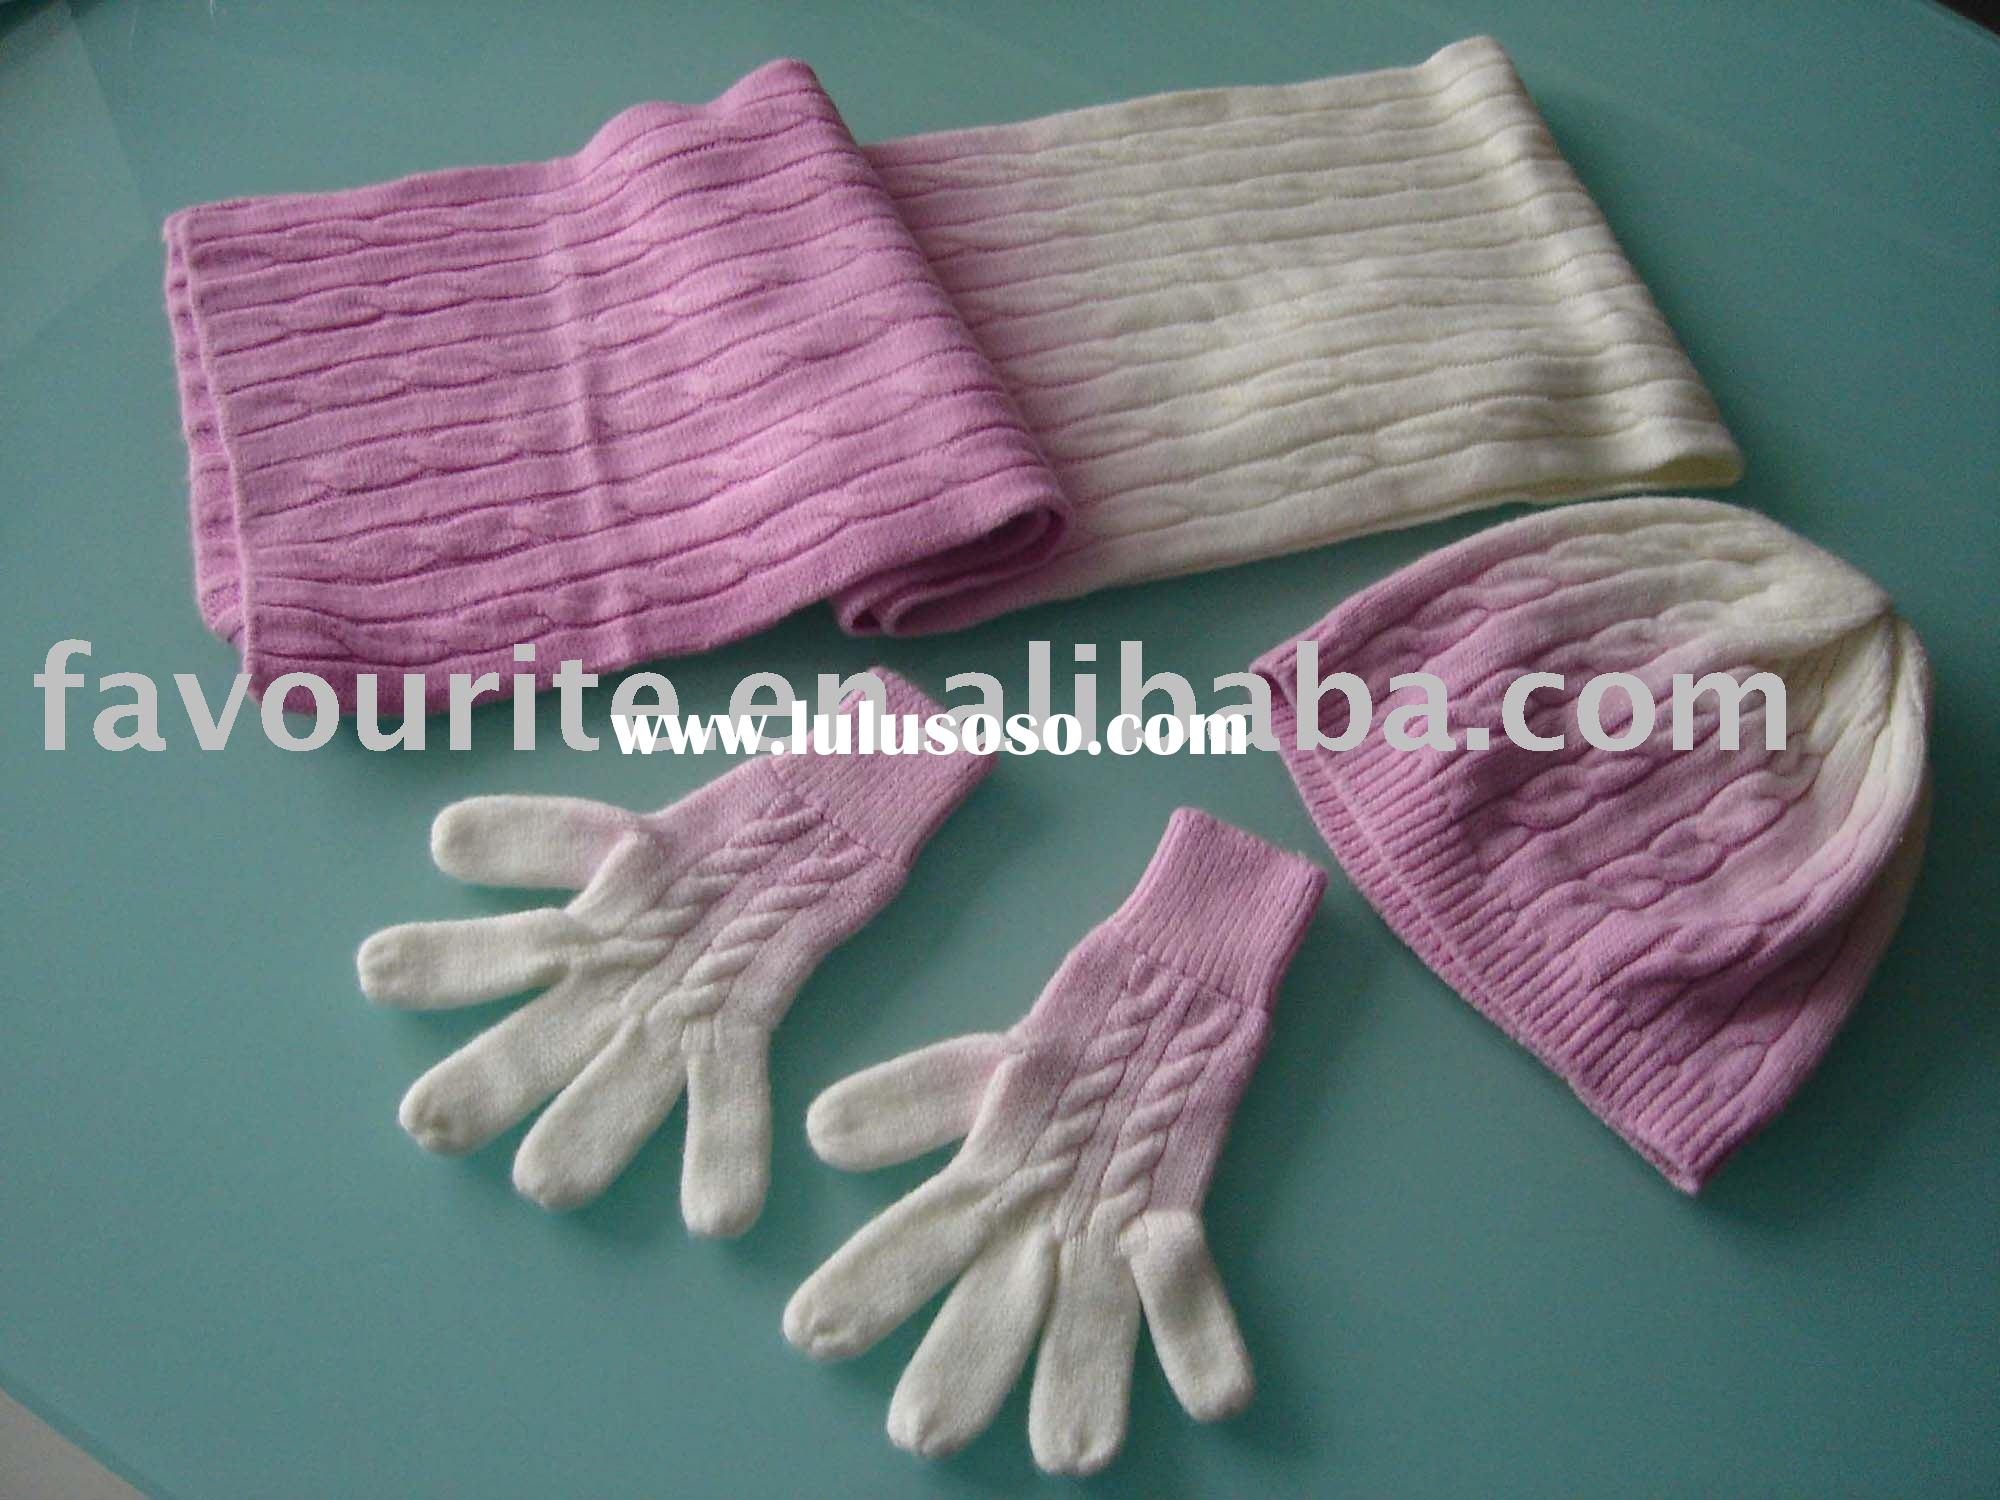 knitted hat,glove & scarf sets